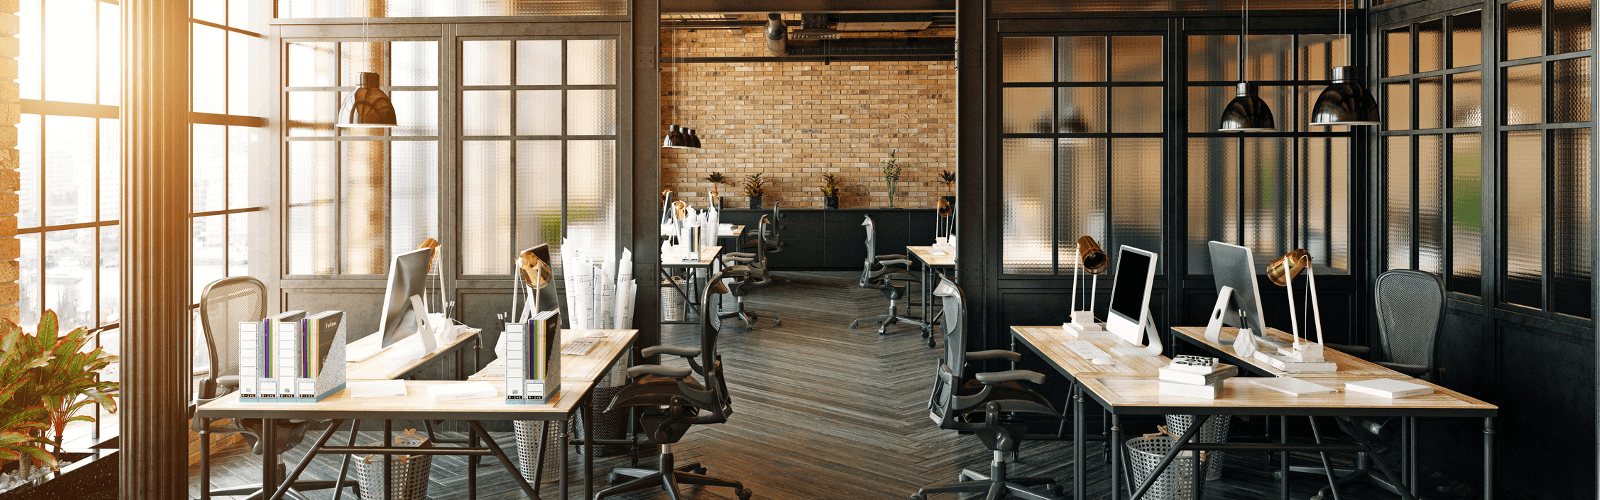 Office designs to improve employee experience